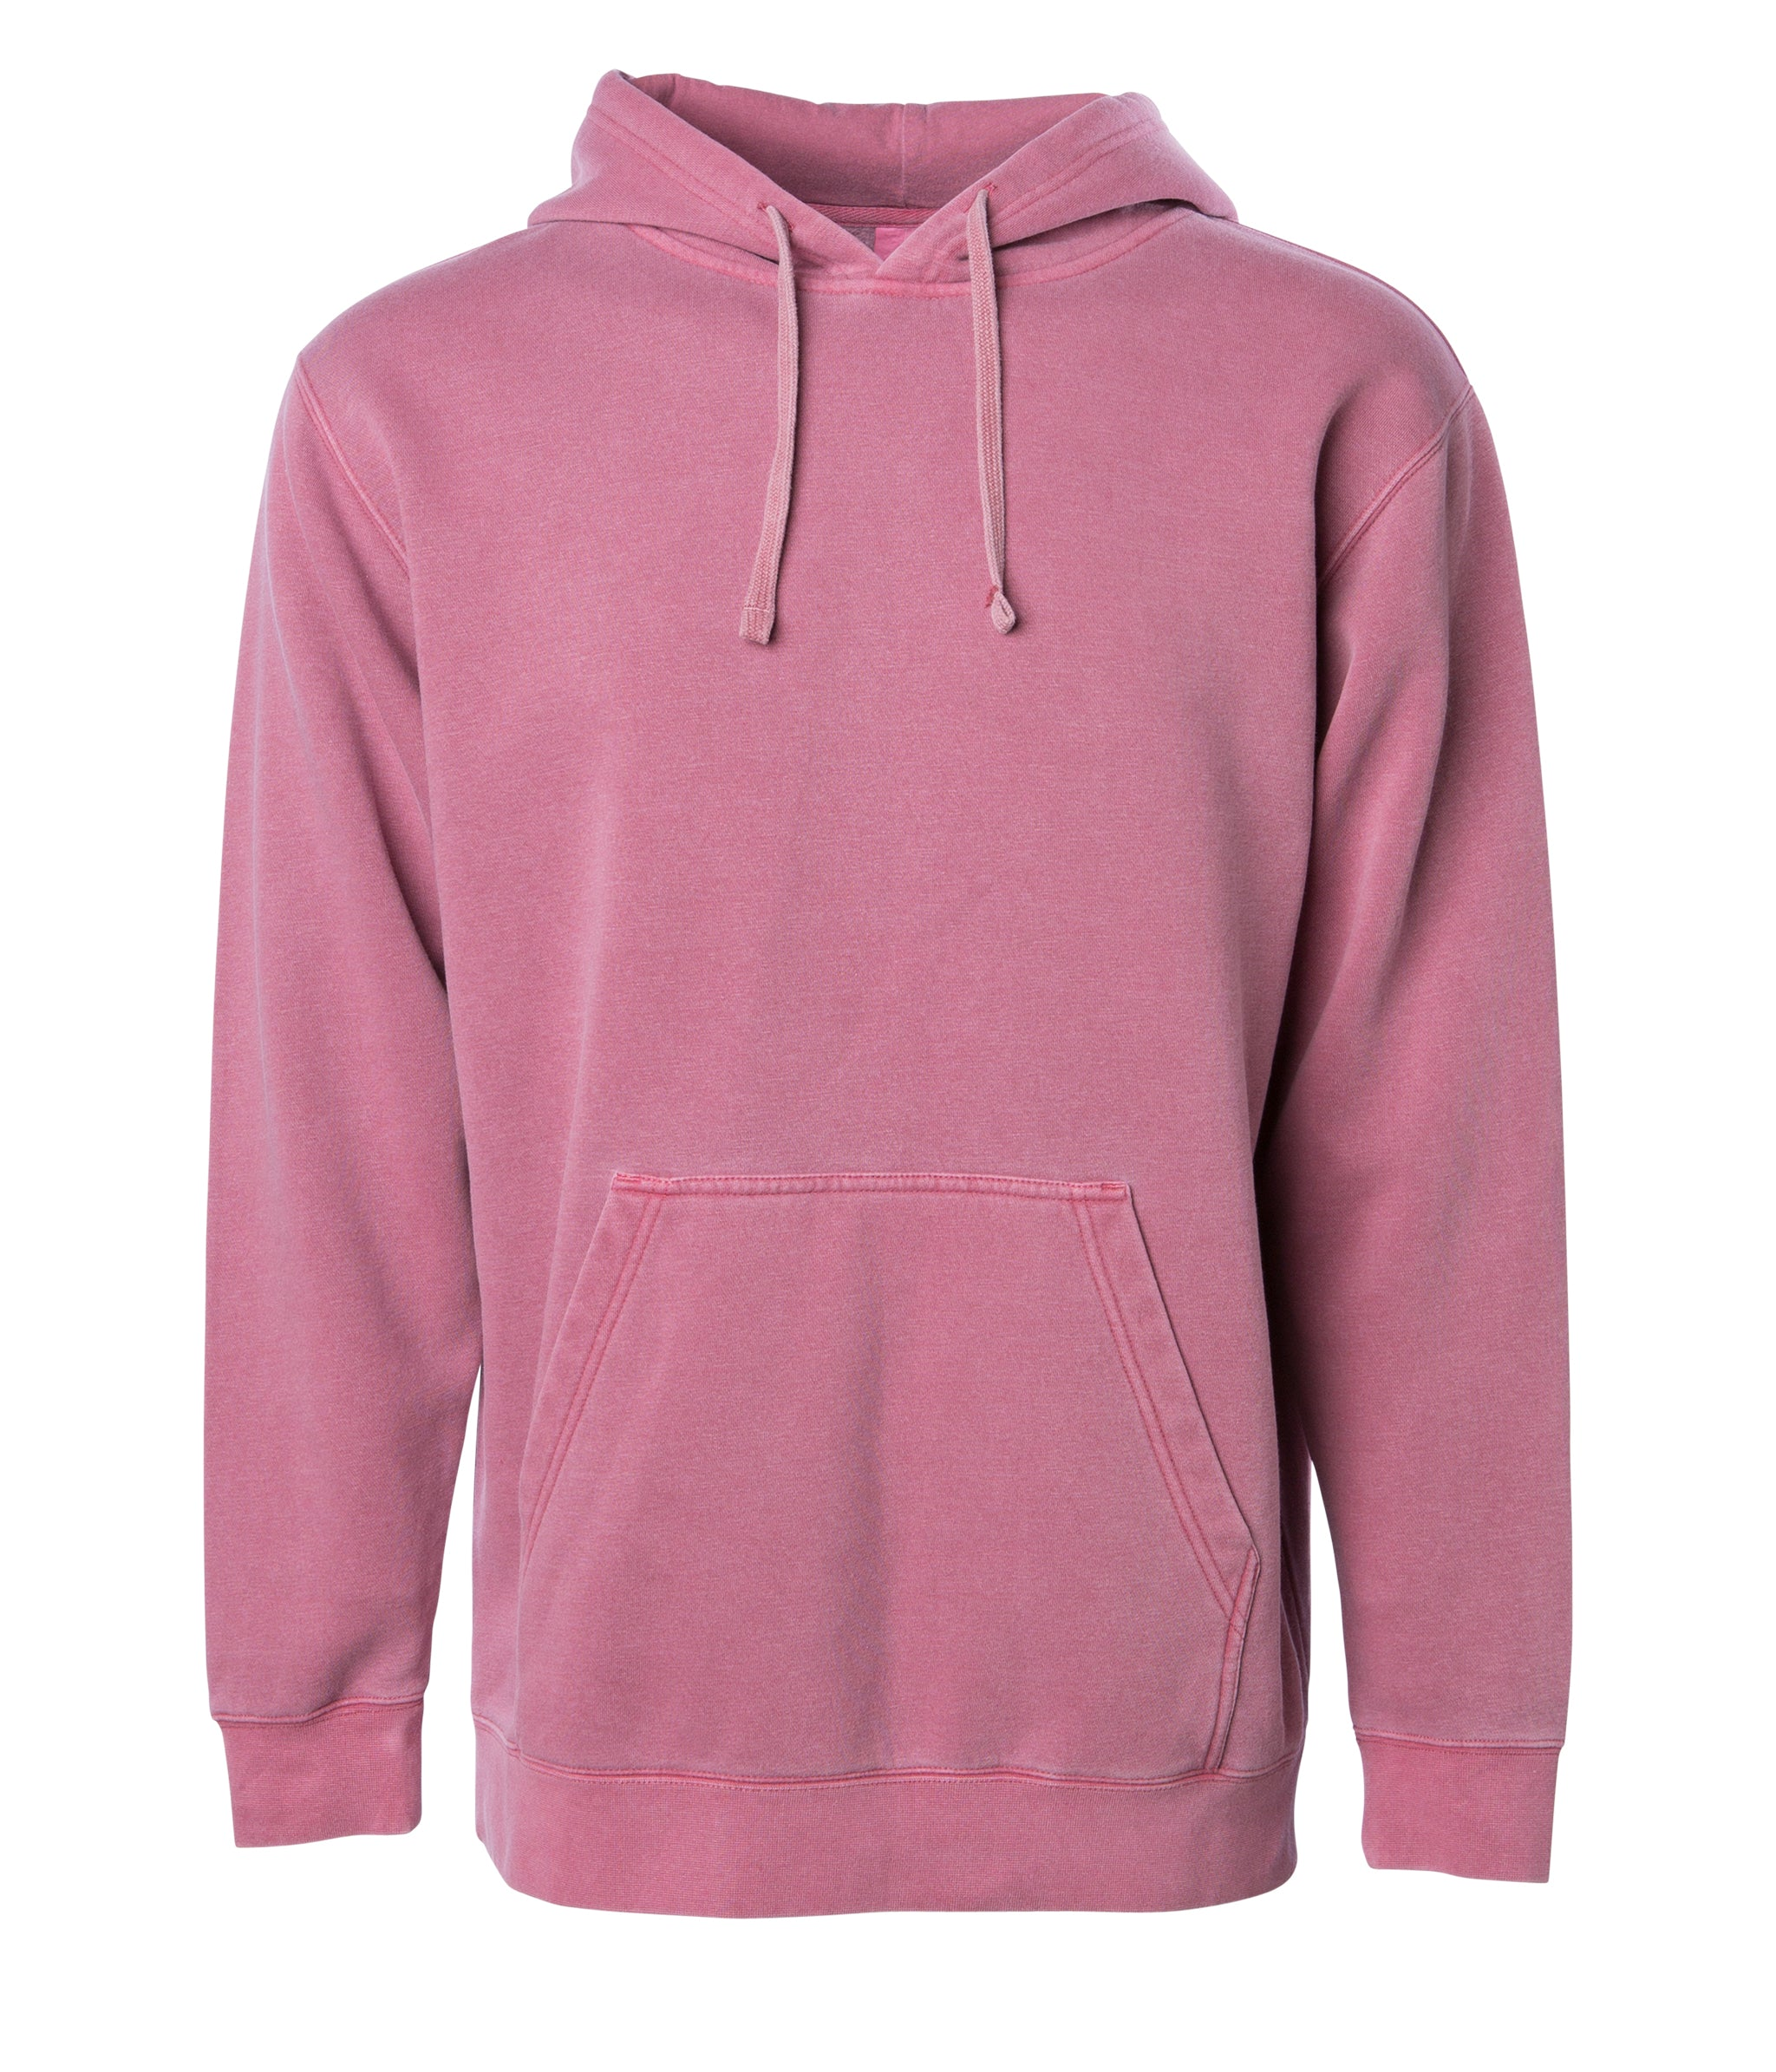 official photos 84a1d 664bd Unisex Midweight Pigment Dyed Hooded Pullover